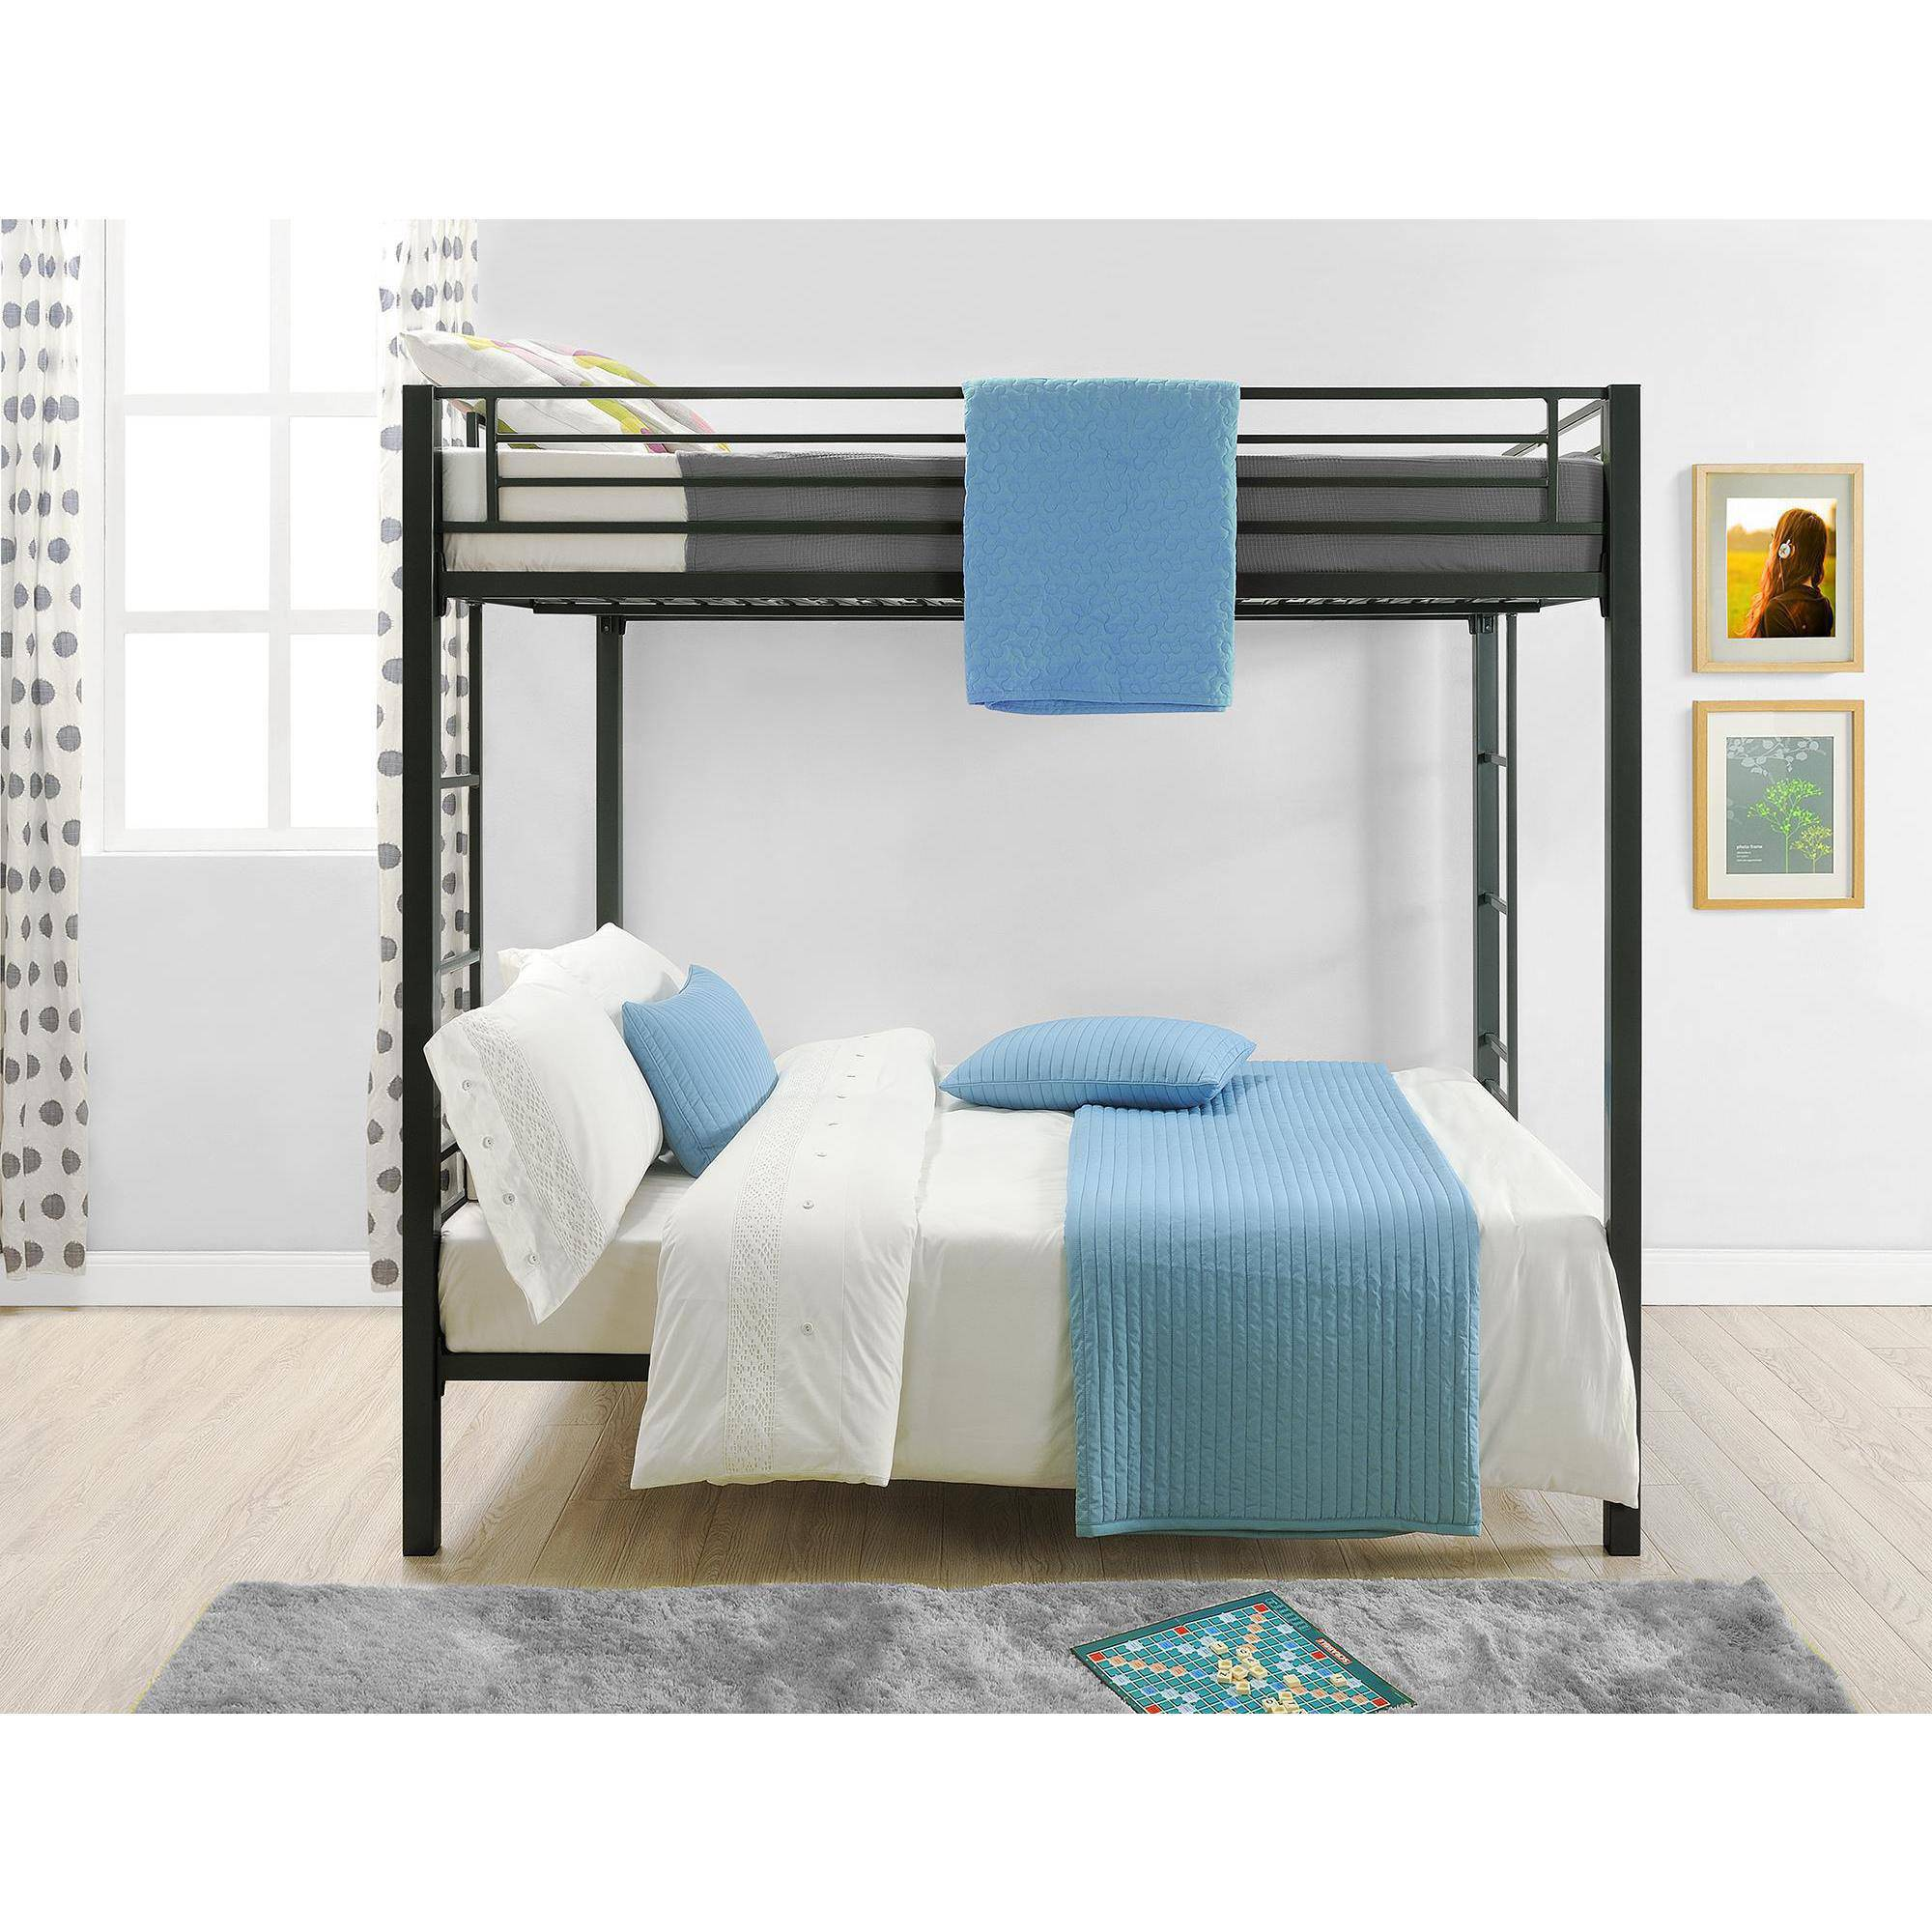 Attractive Full Over Full Bed Part - 11: Dorel Full-Over-Full Metal Bunk Bed, Multiple Finishes With 2 Mainstays  Mattresses - Walmart.com